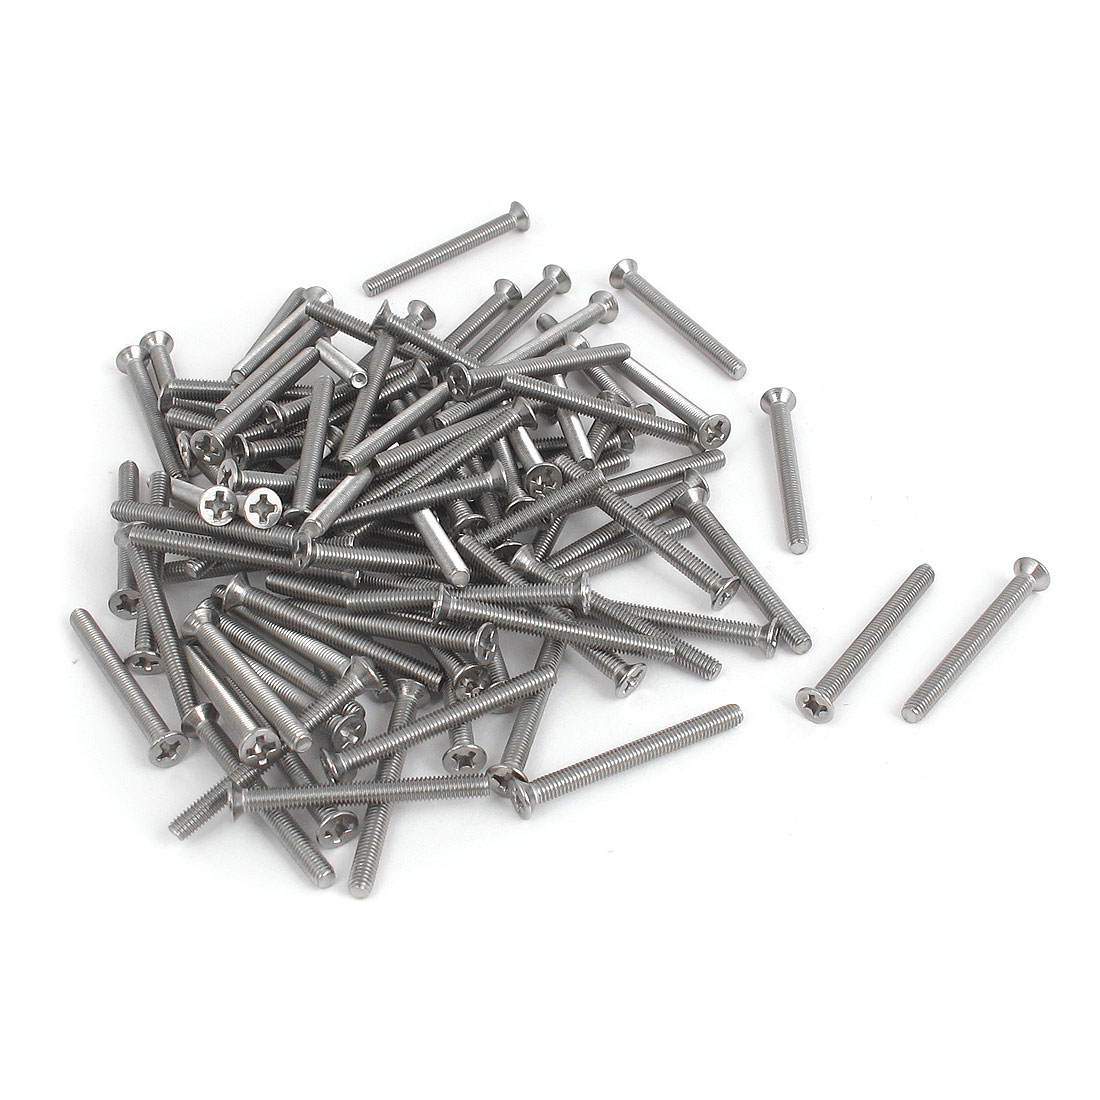 100pcs 3mm Thread Dia Gray Metal Crosshead Phillips Flat Head Screw Fastener Bolt